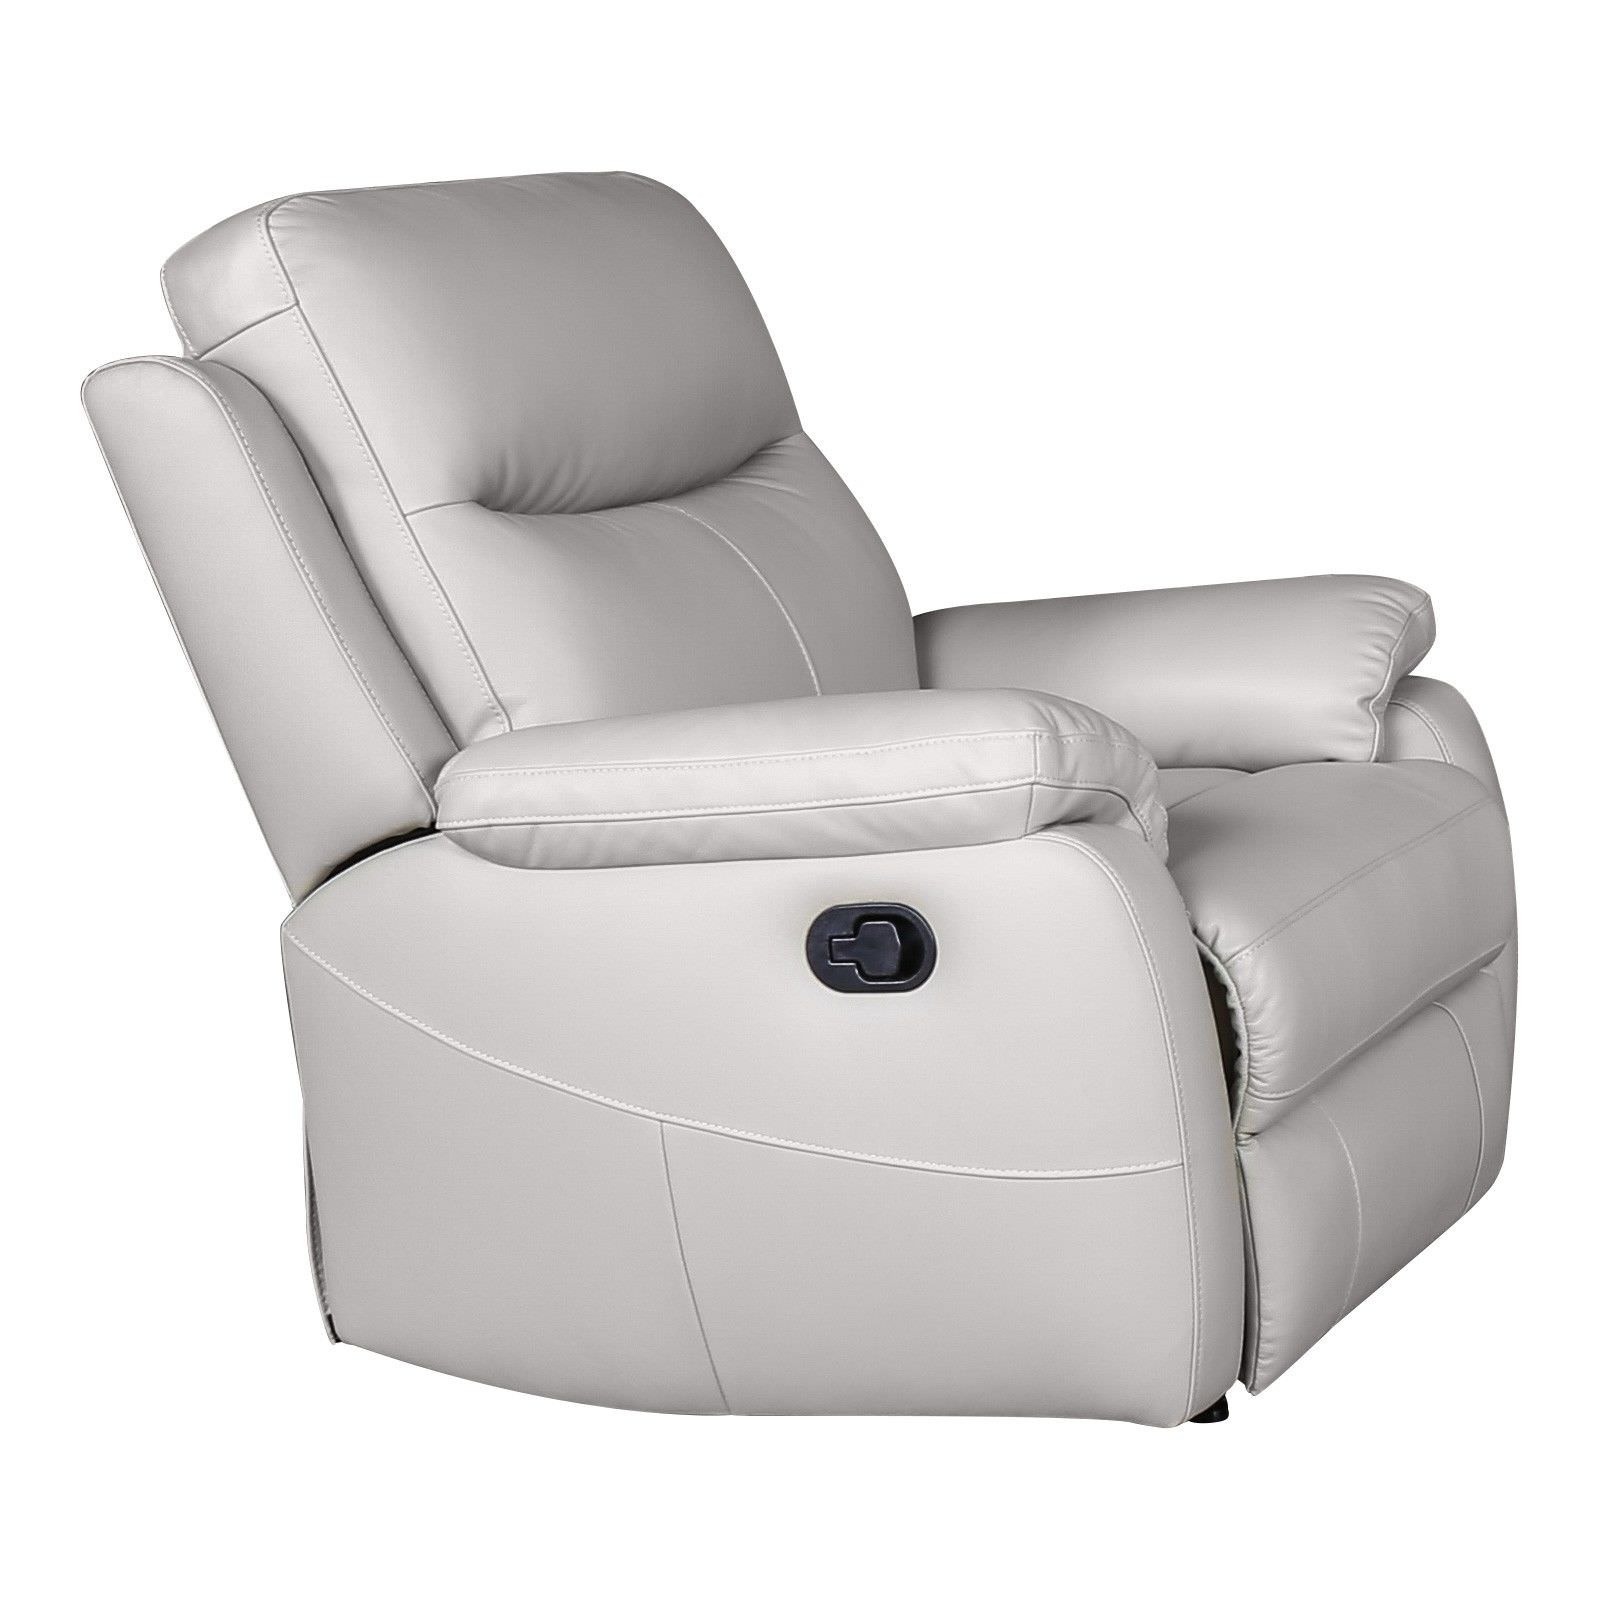 Colson Leather Recliner Lounge Armchair, Mist